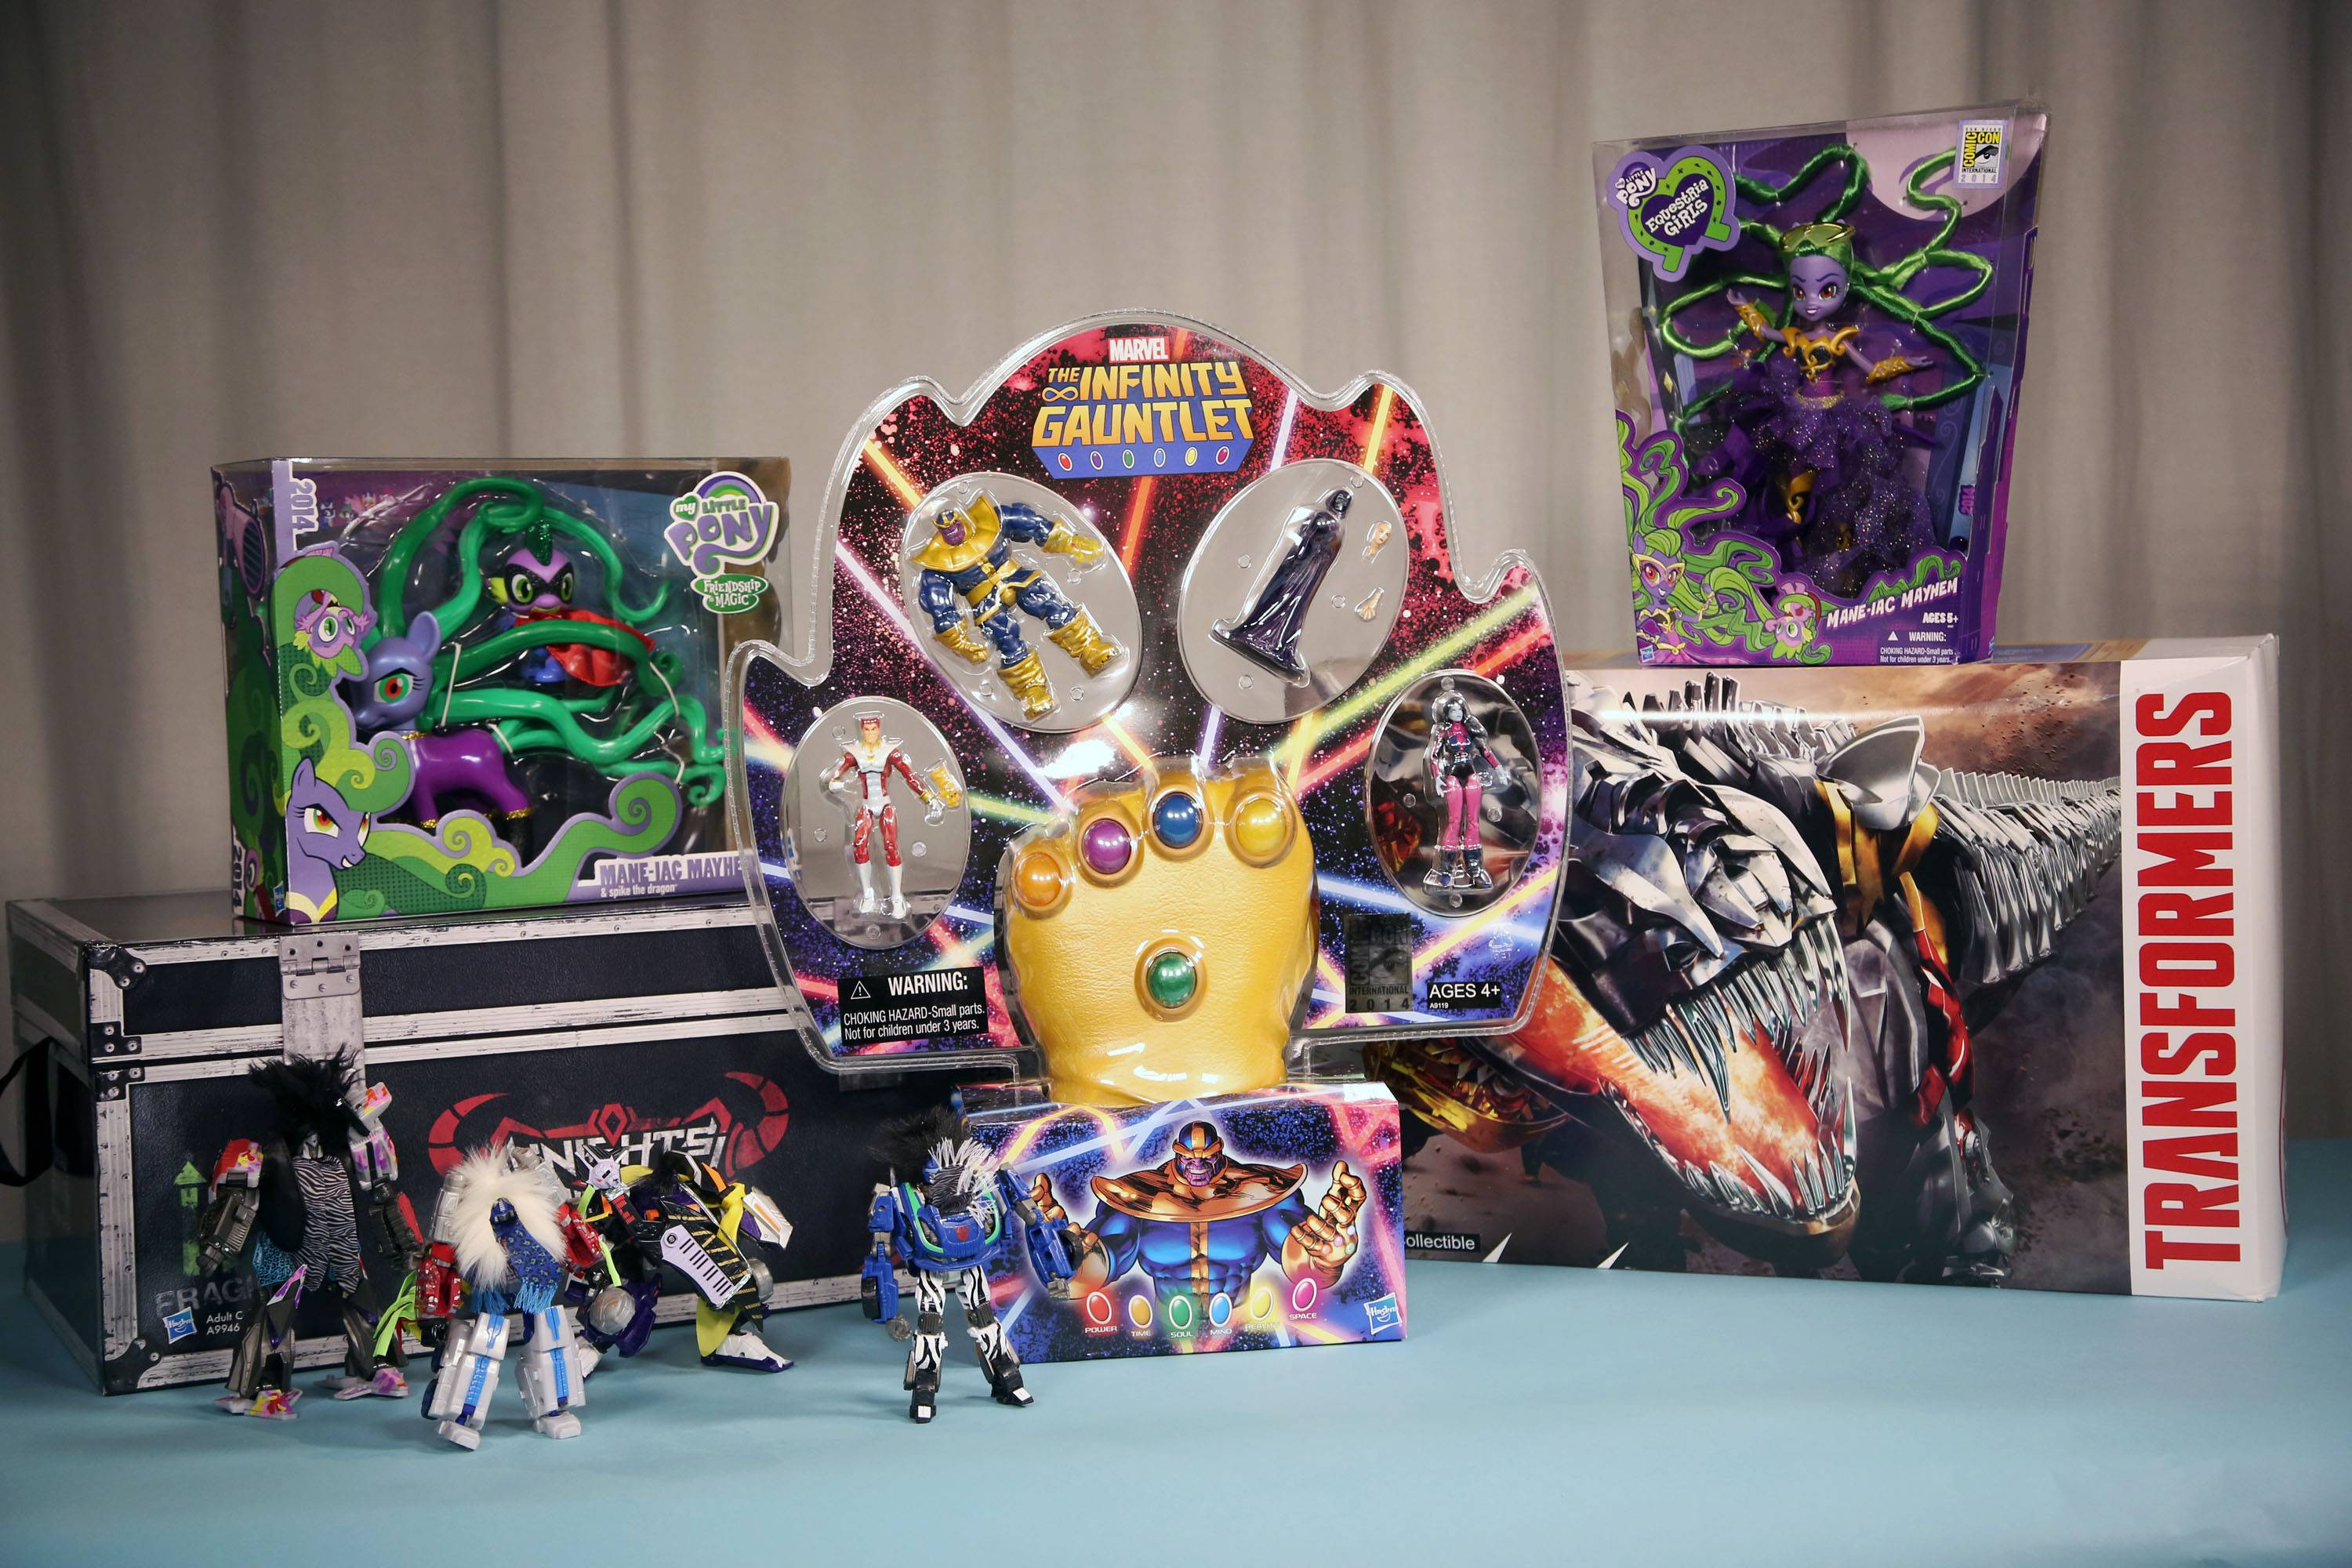 Several toy makers and publishers are offering collectible toys and books at the annual Comic-Con, which kicks off Thursday in San Diego.